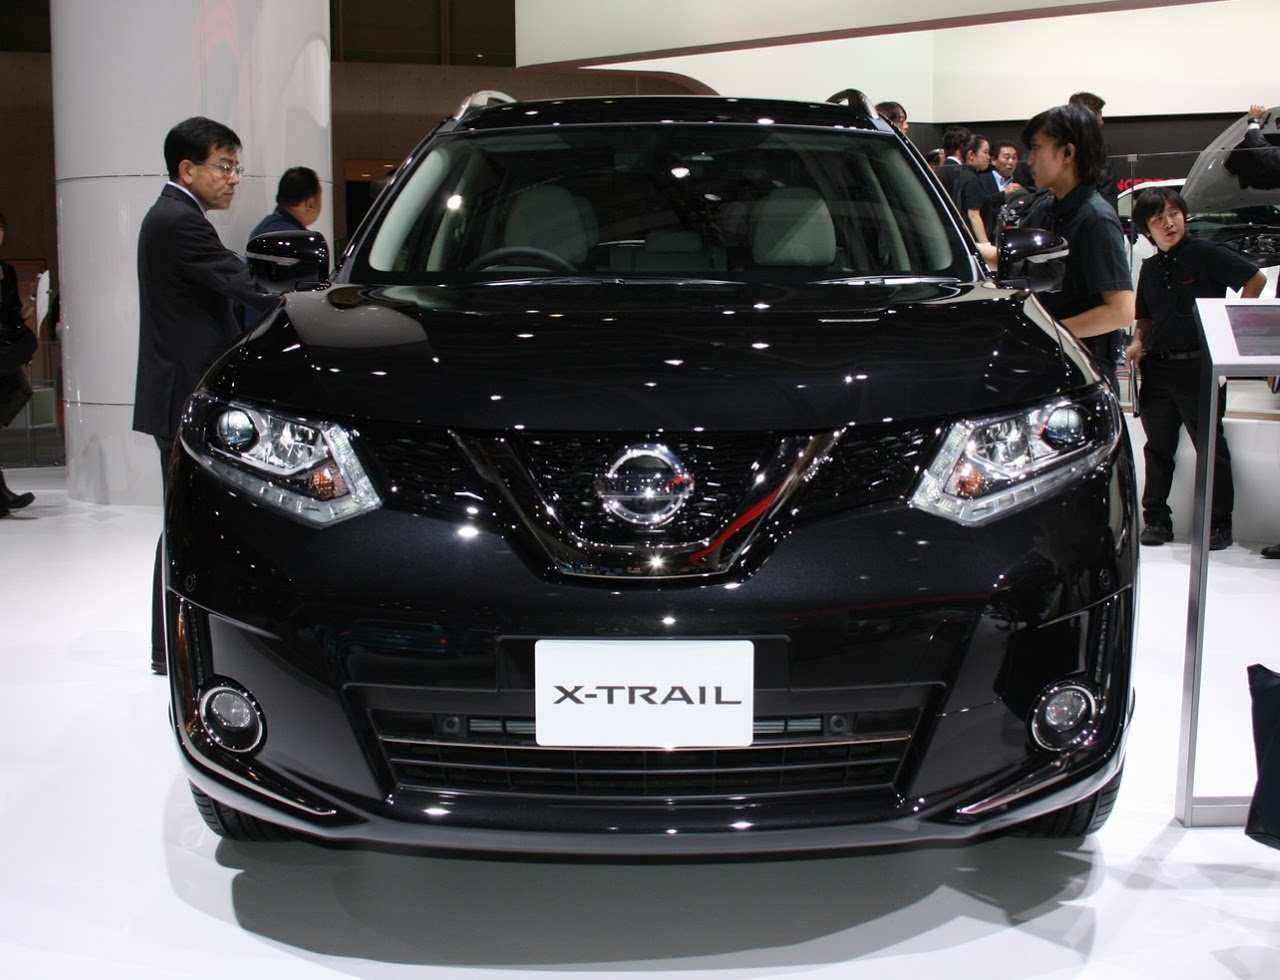 62 All New Nissan X Trail 2020 Review Model for Nissan X Trail 2020 Review